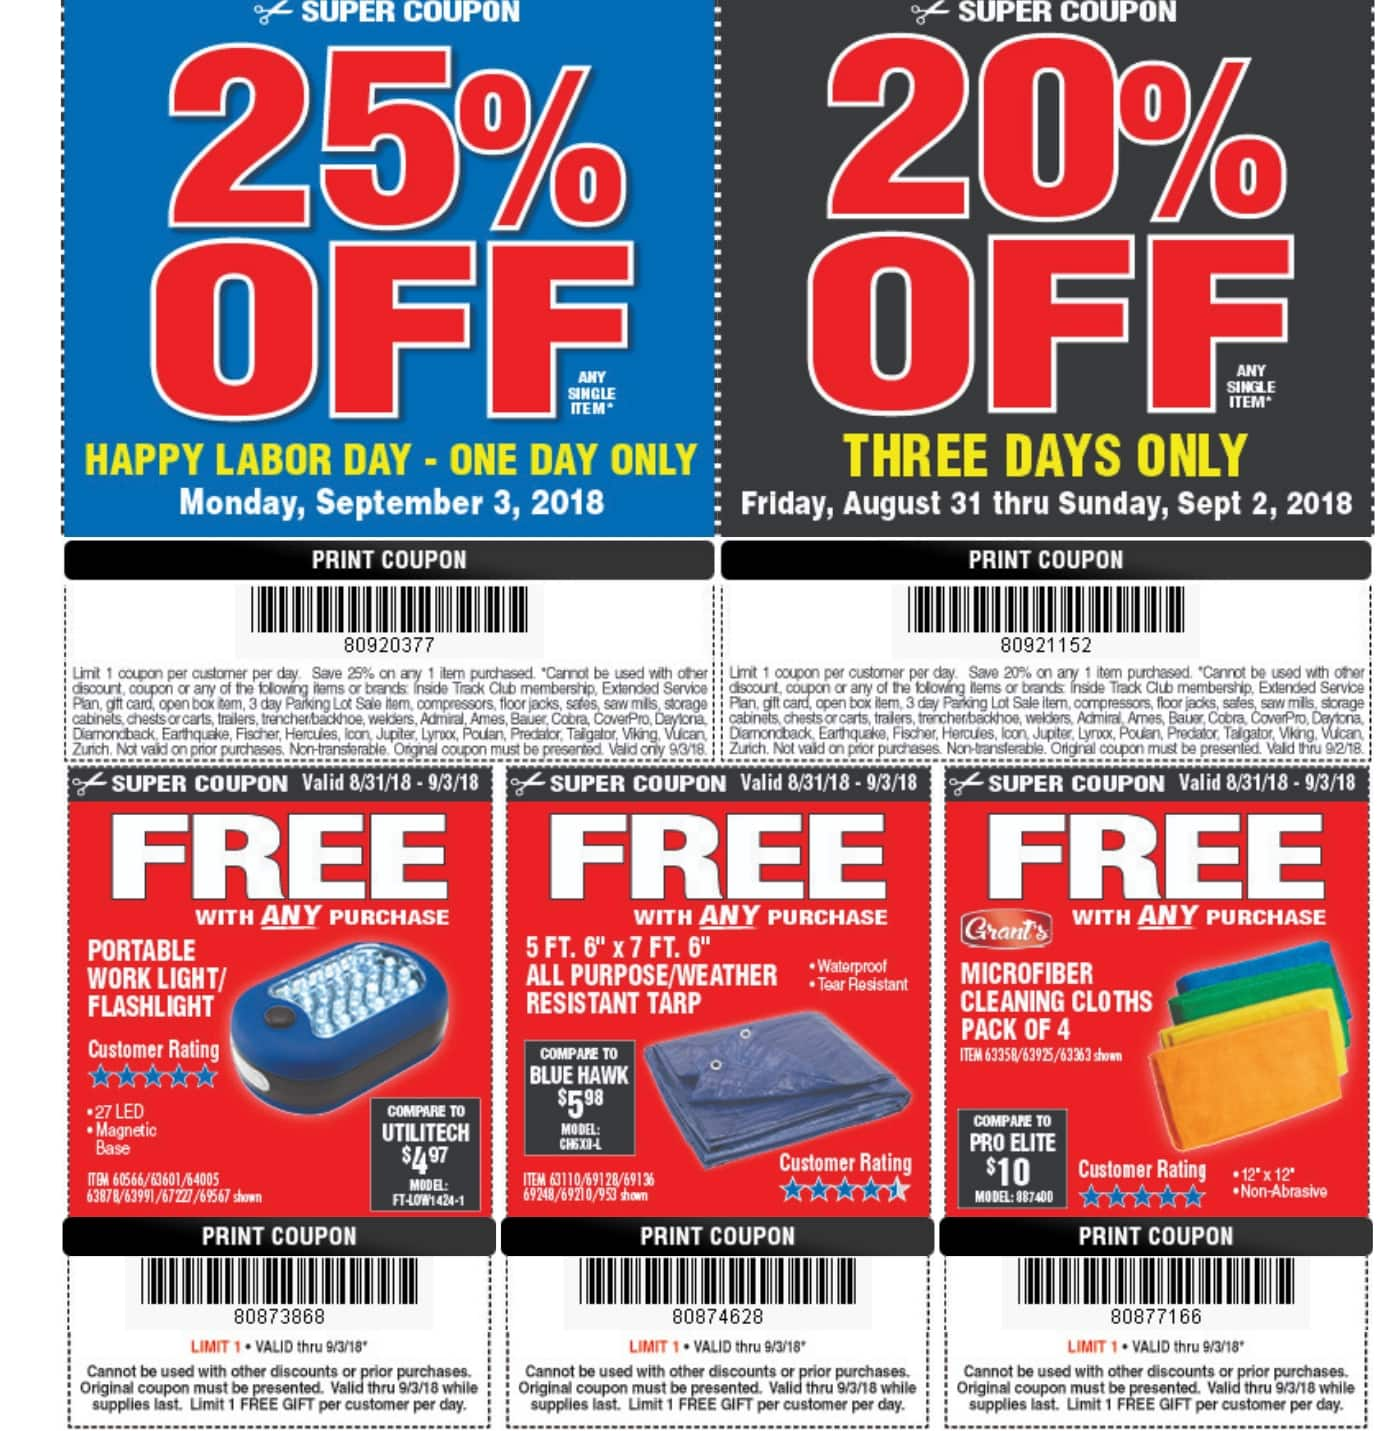 Harbor Freight Weekend Sale 20 Off Now Sunday 25 Off Monday